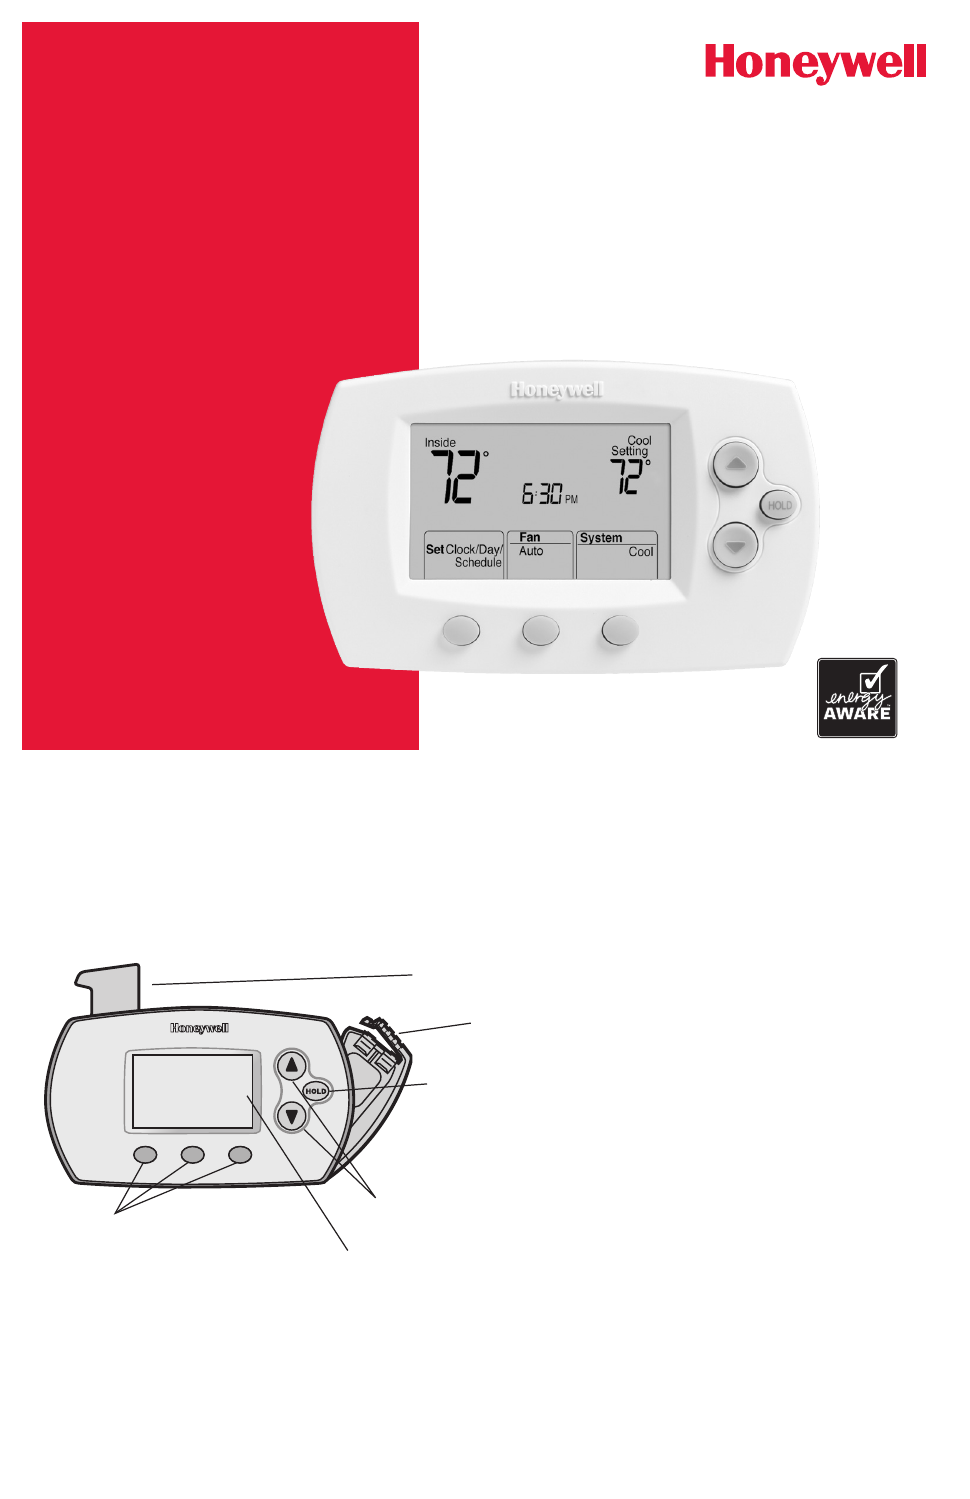 Honeywell Th6220d1002 Owners Manual Free Pdf Download 24 Pages Thermostat Instructions Guide Example 2018 Background Image